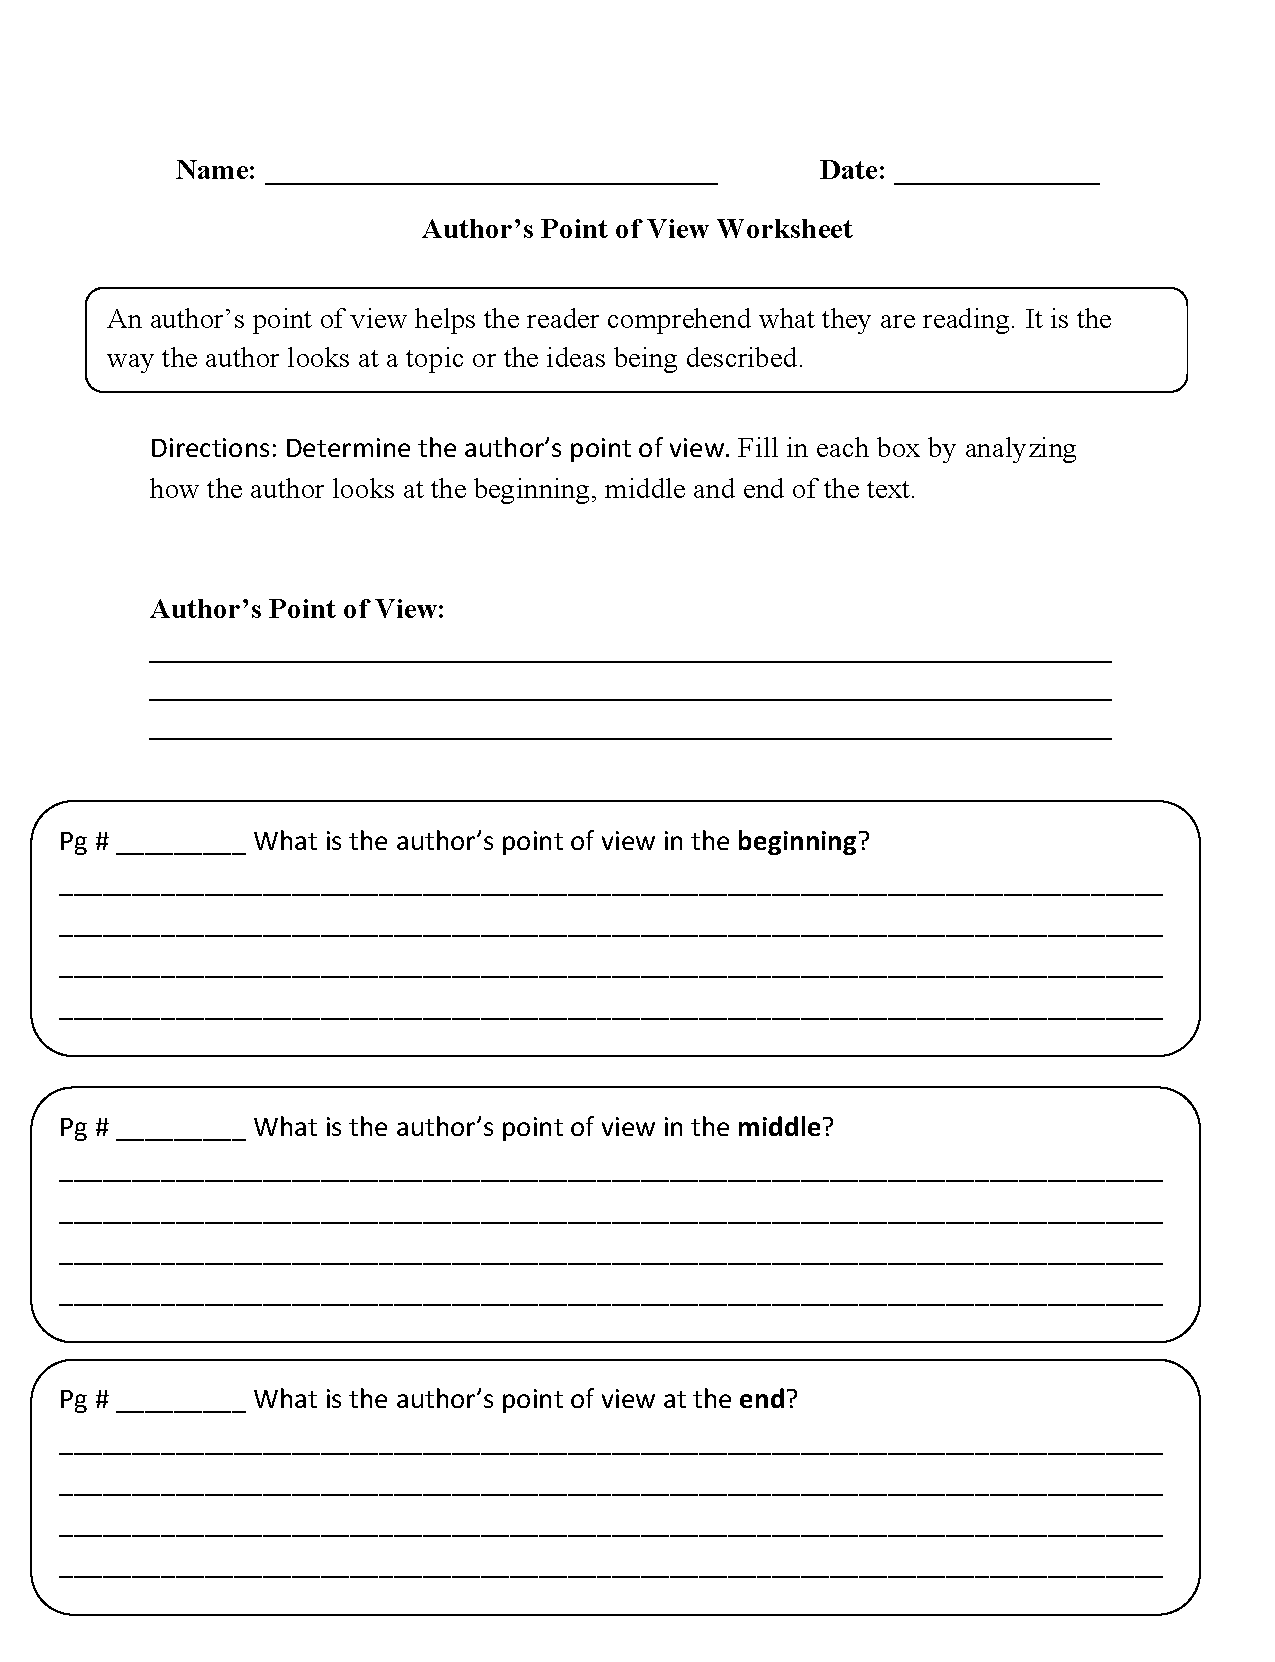 Proatmealus  Nice Englishlinxcom  Point Of View Worksheets With Excellent Point Of View Worksheets With Delightful Writing Worksheet For Kids Also Using Colons Worksheet In Addition Free Printable Handwriting Practice Worksheets For Kids And Doubling Worksheets Ks As Well As Standard English Worksheet Additionally Electronic Structure Worksheet From Englishlinxcom With Proatmealus  Excellent Englishlinxcom  Point Of View Worksheets With Delightful Point Of View Worksheets And Nice Writing Worksheet For Kids Also Using Colons Worksheet In Addition Free Printable Handwriting Practice Worksheets For Kids From Englishlinxcom